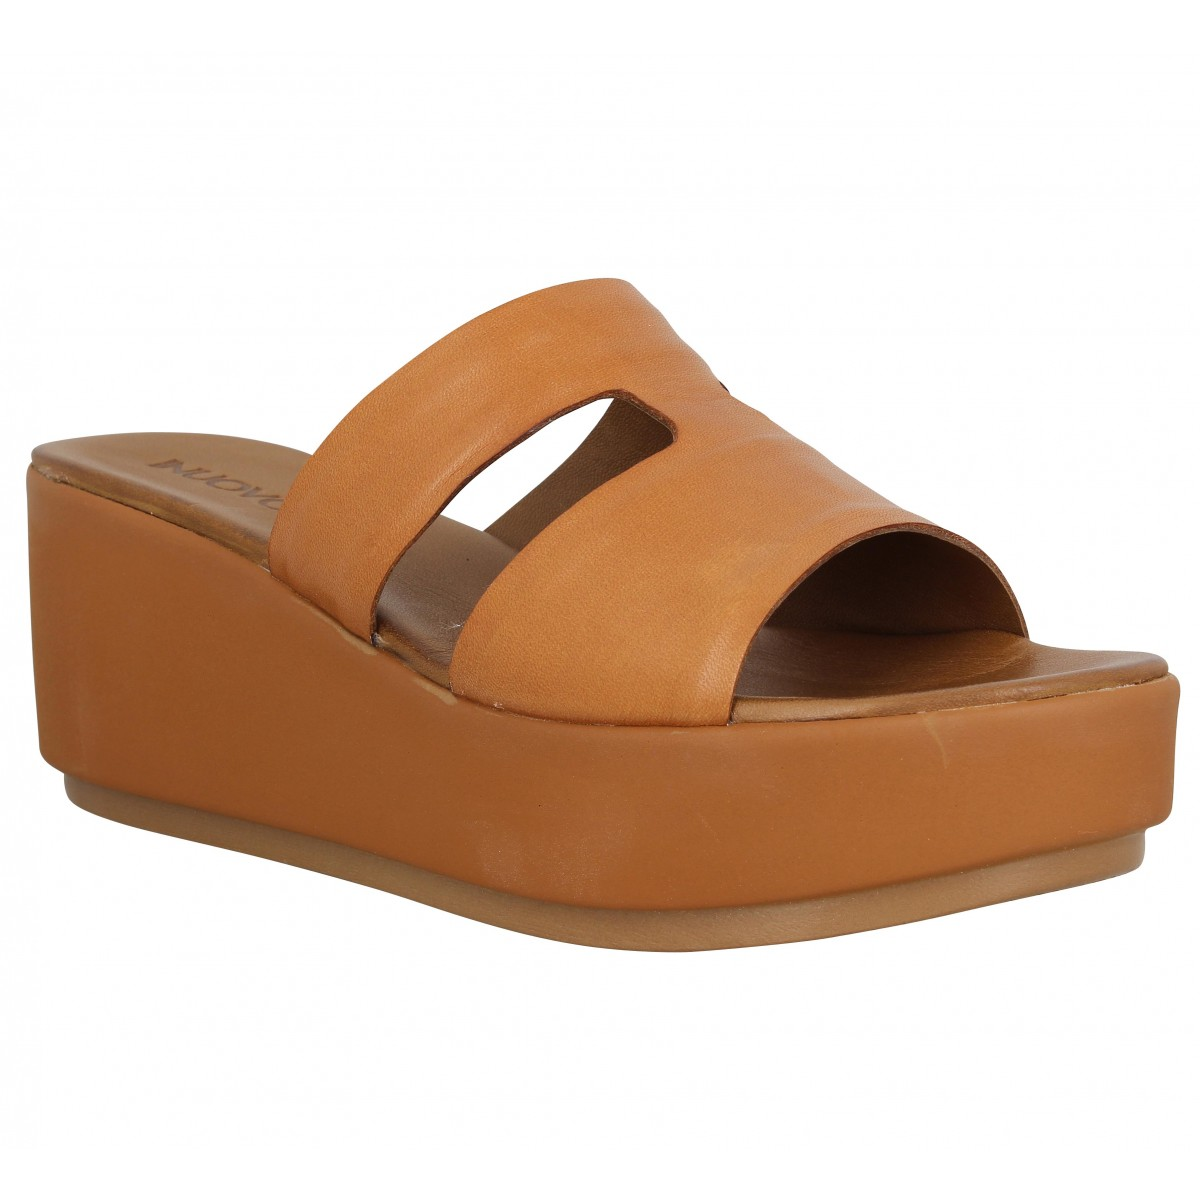 Inuovo Femme 8758 Cuir -40-coconut